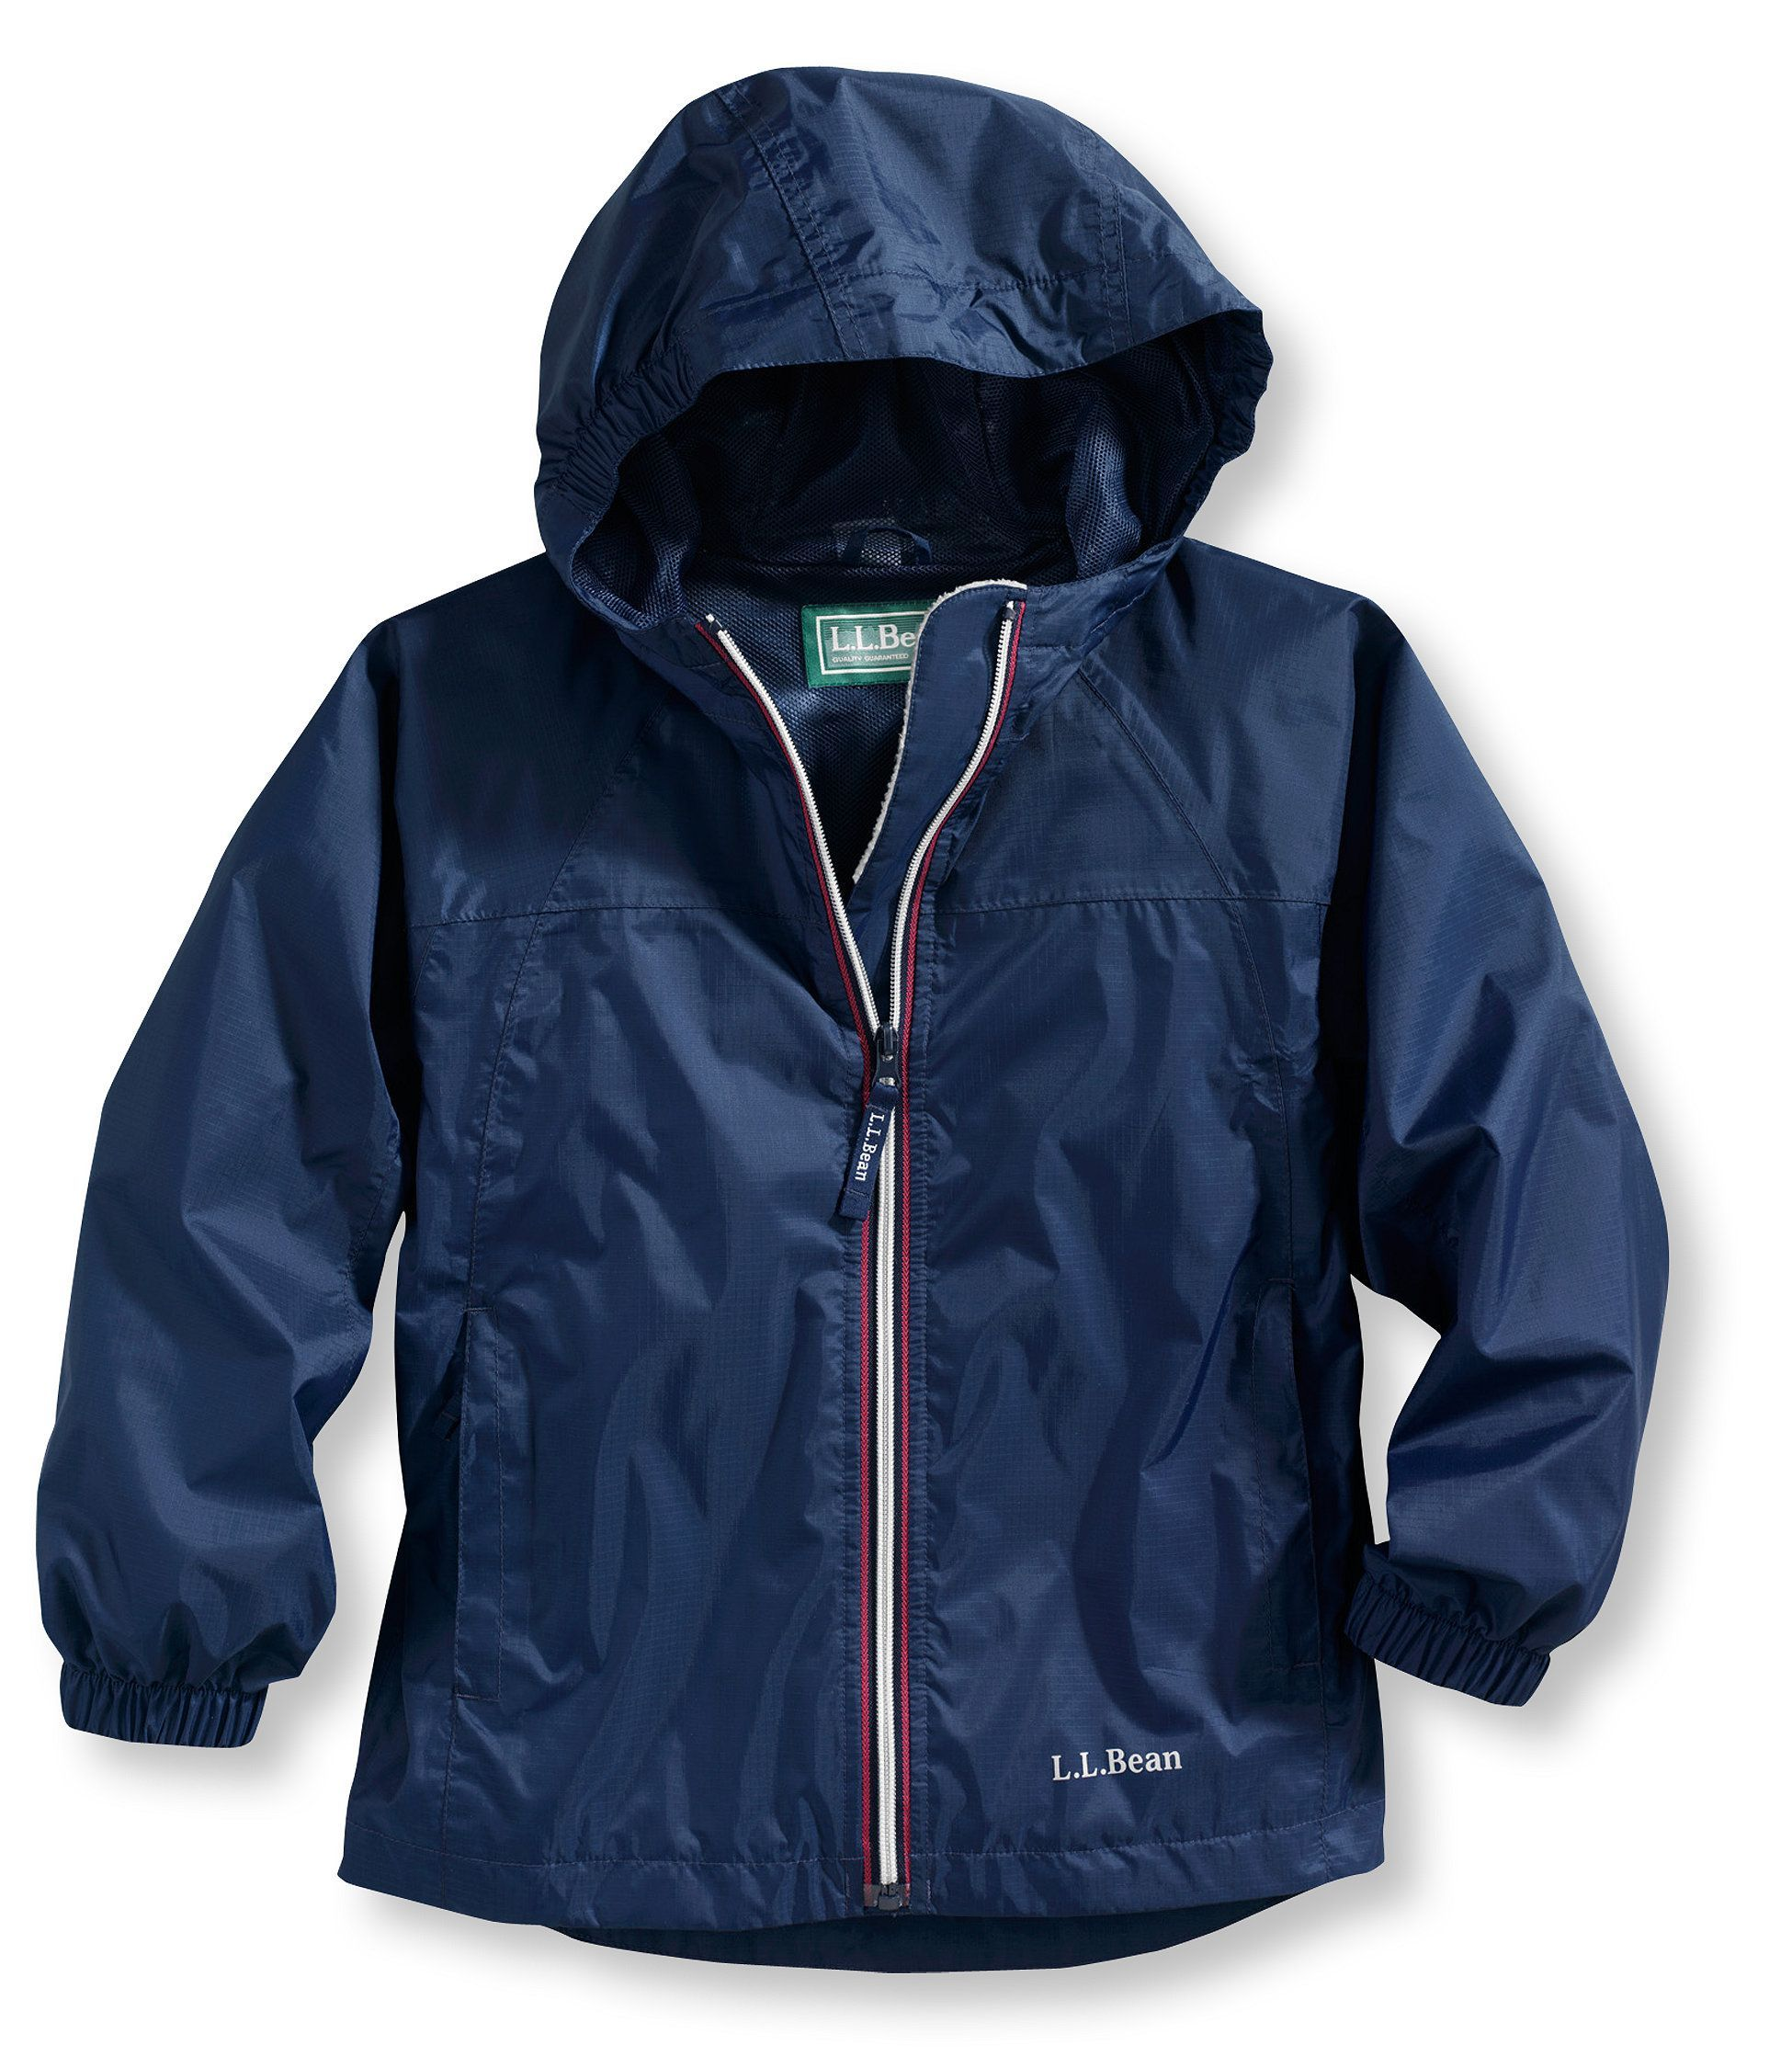 aaa96aa72 Infants' and Toddlers' Discovery Rain Jacket | Products | Kids rain ...